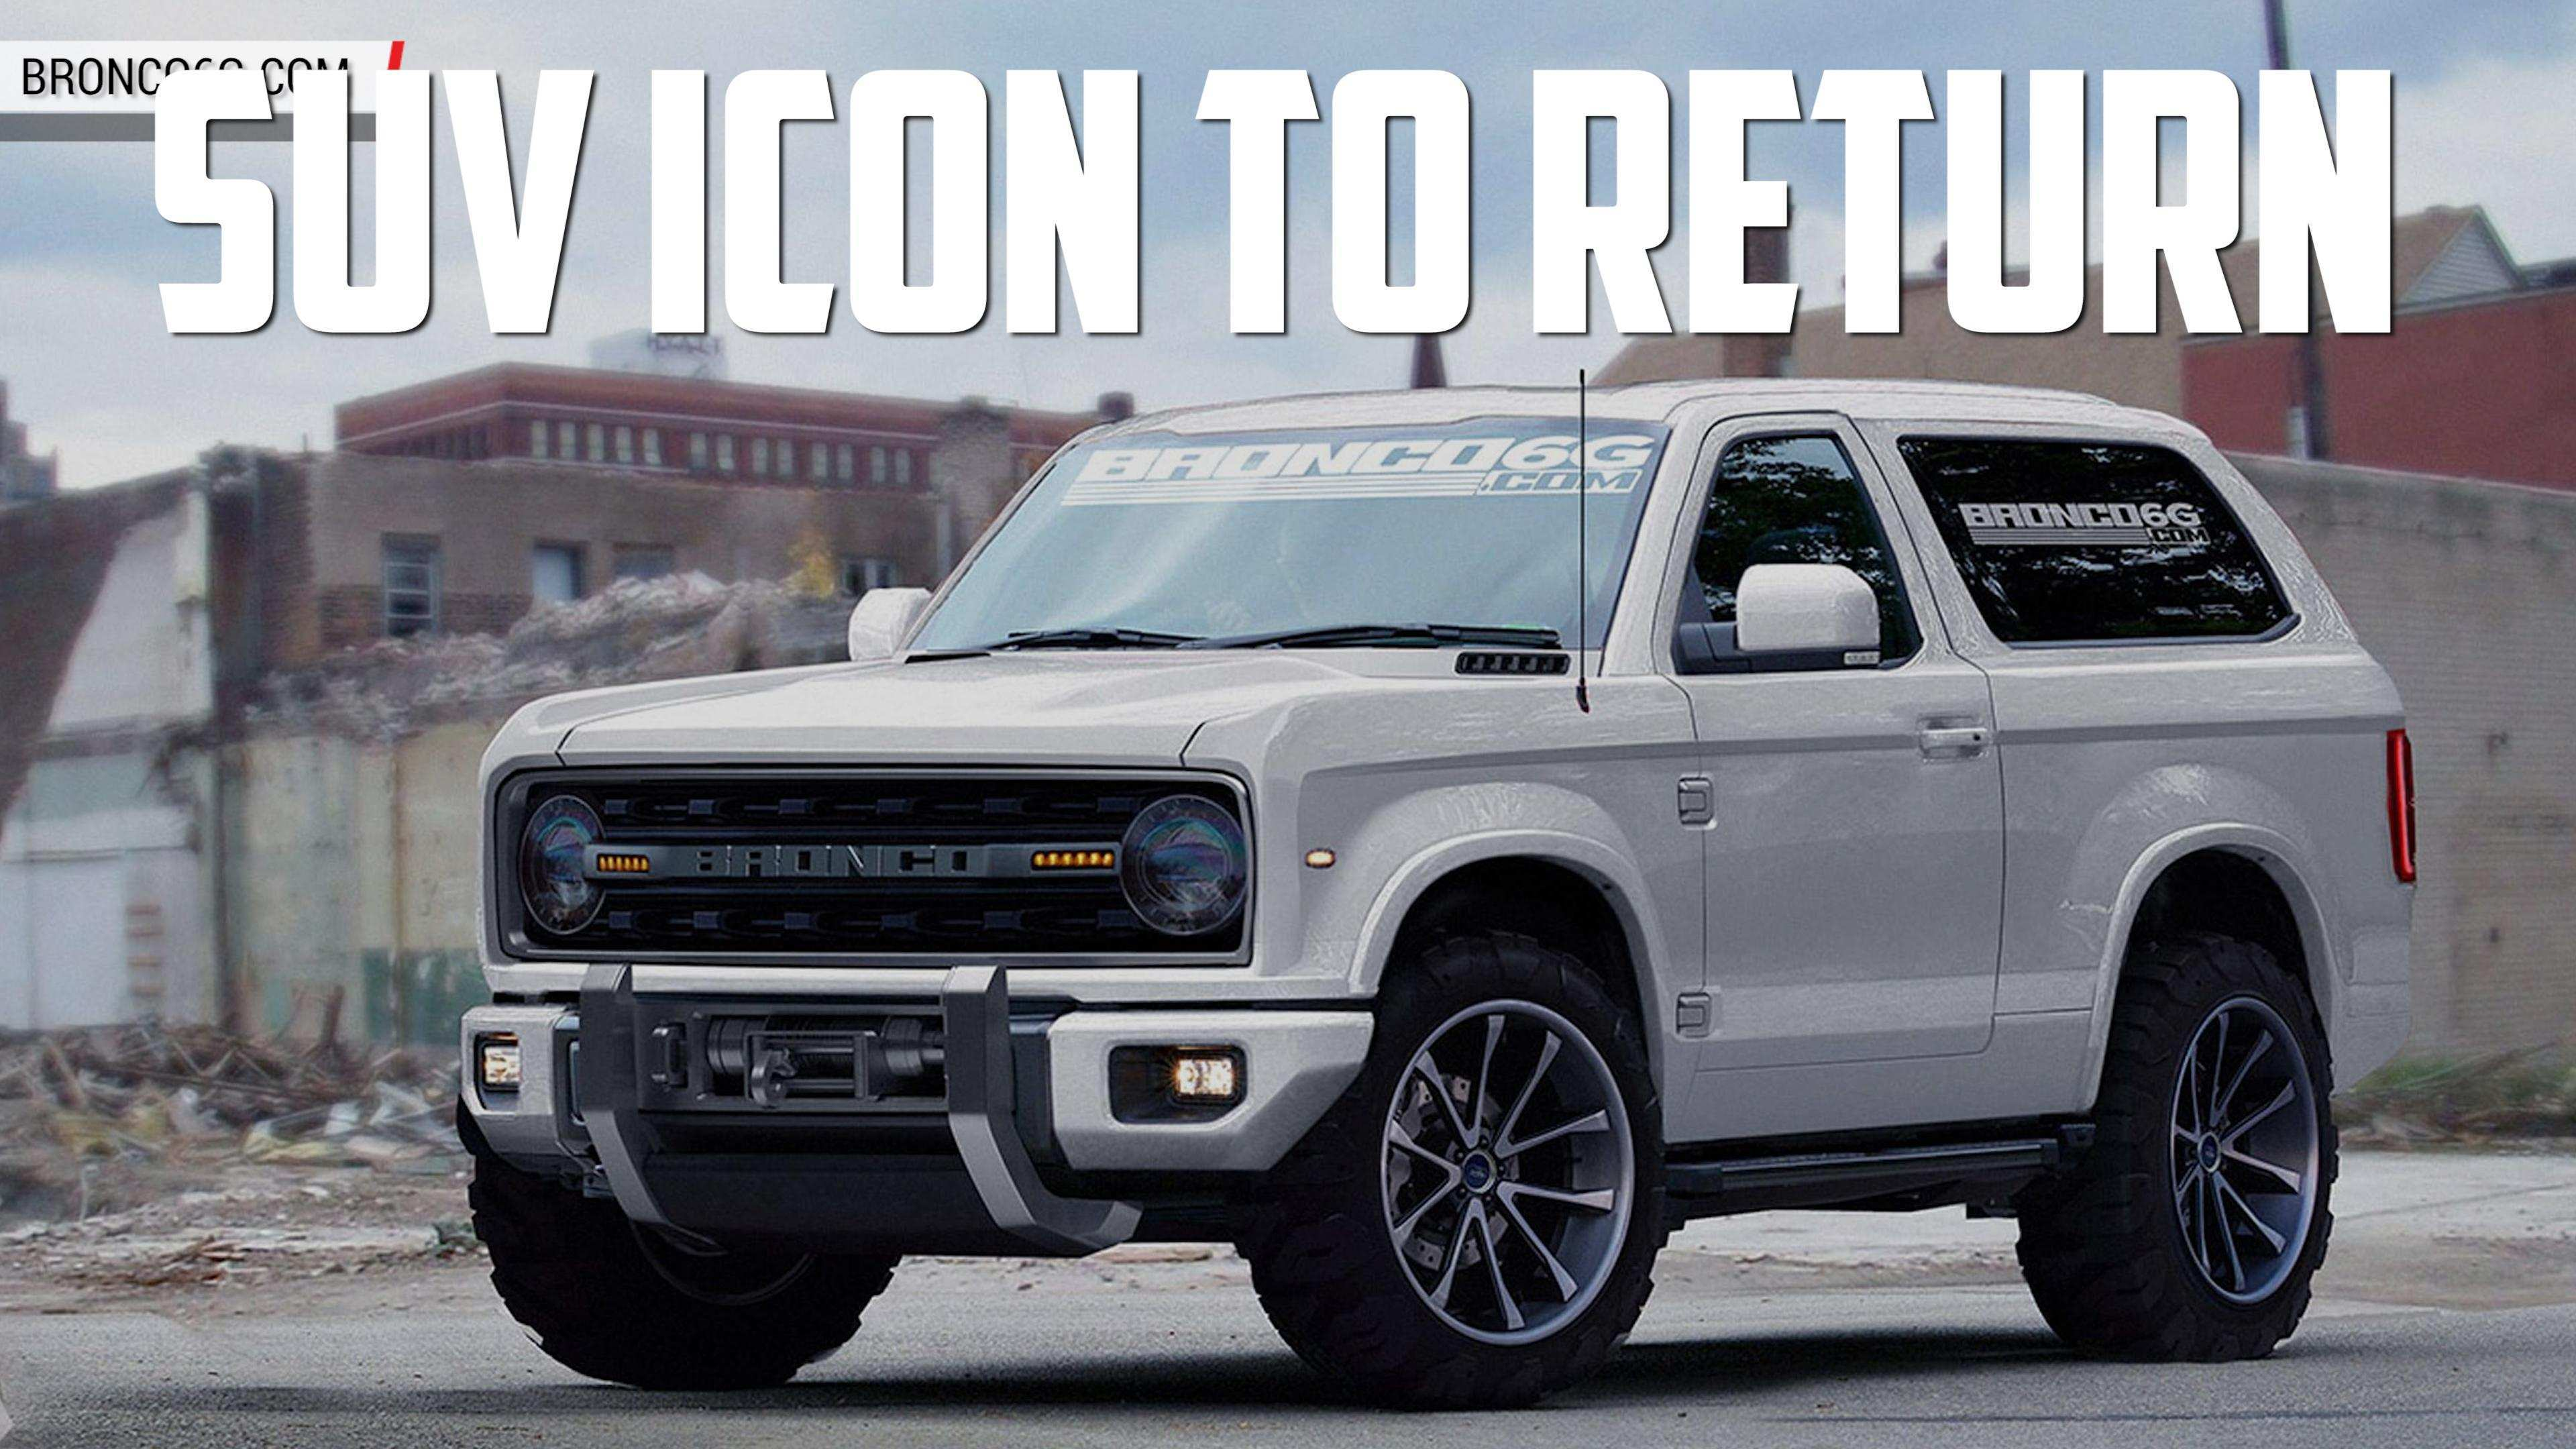 11 All New 2020 Ford Bronco Latest News Exterior And Interior